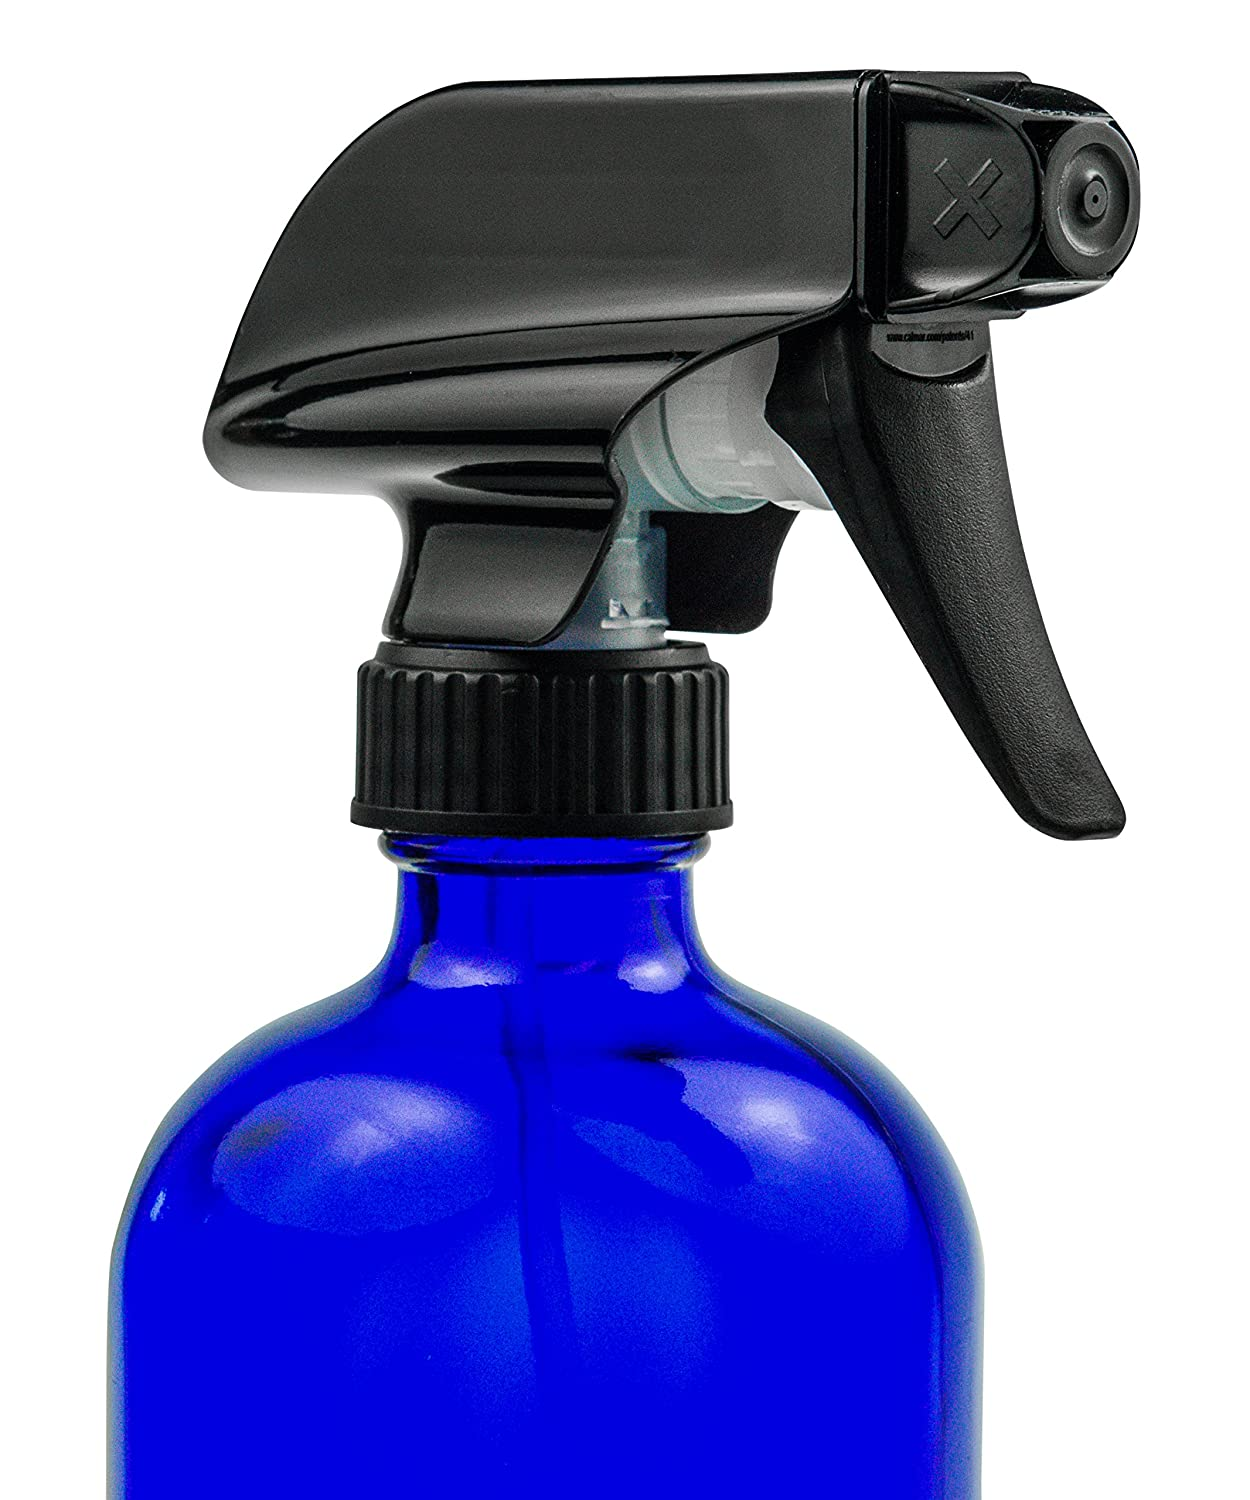 Amazon.com: Botella de spray de cristal azul – Gran ...